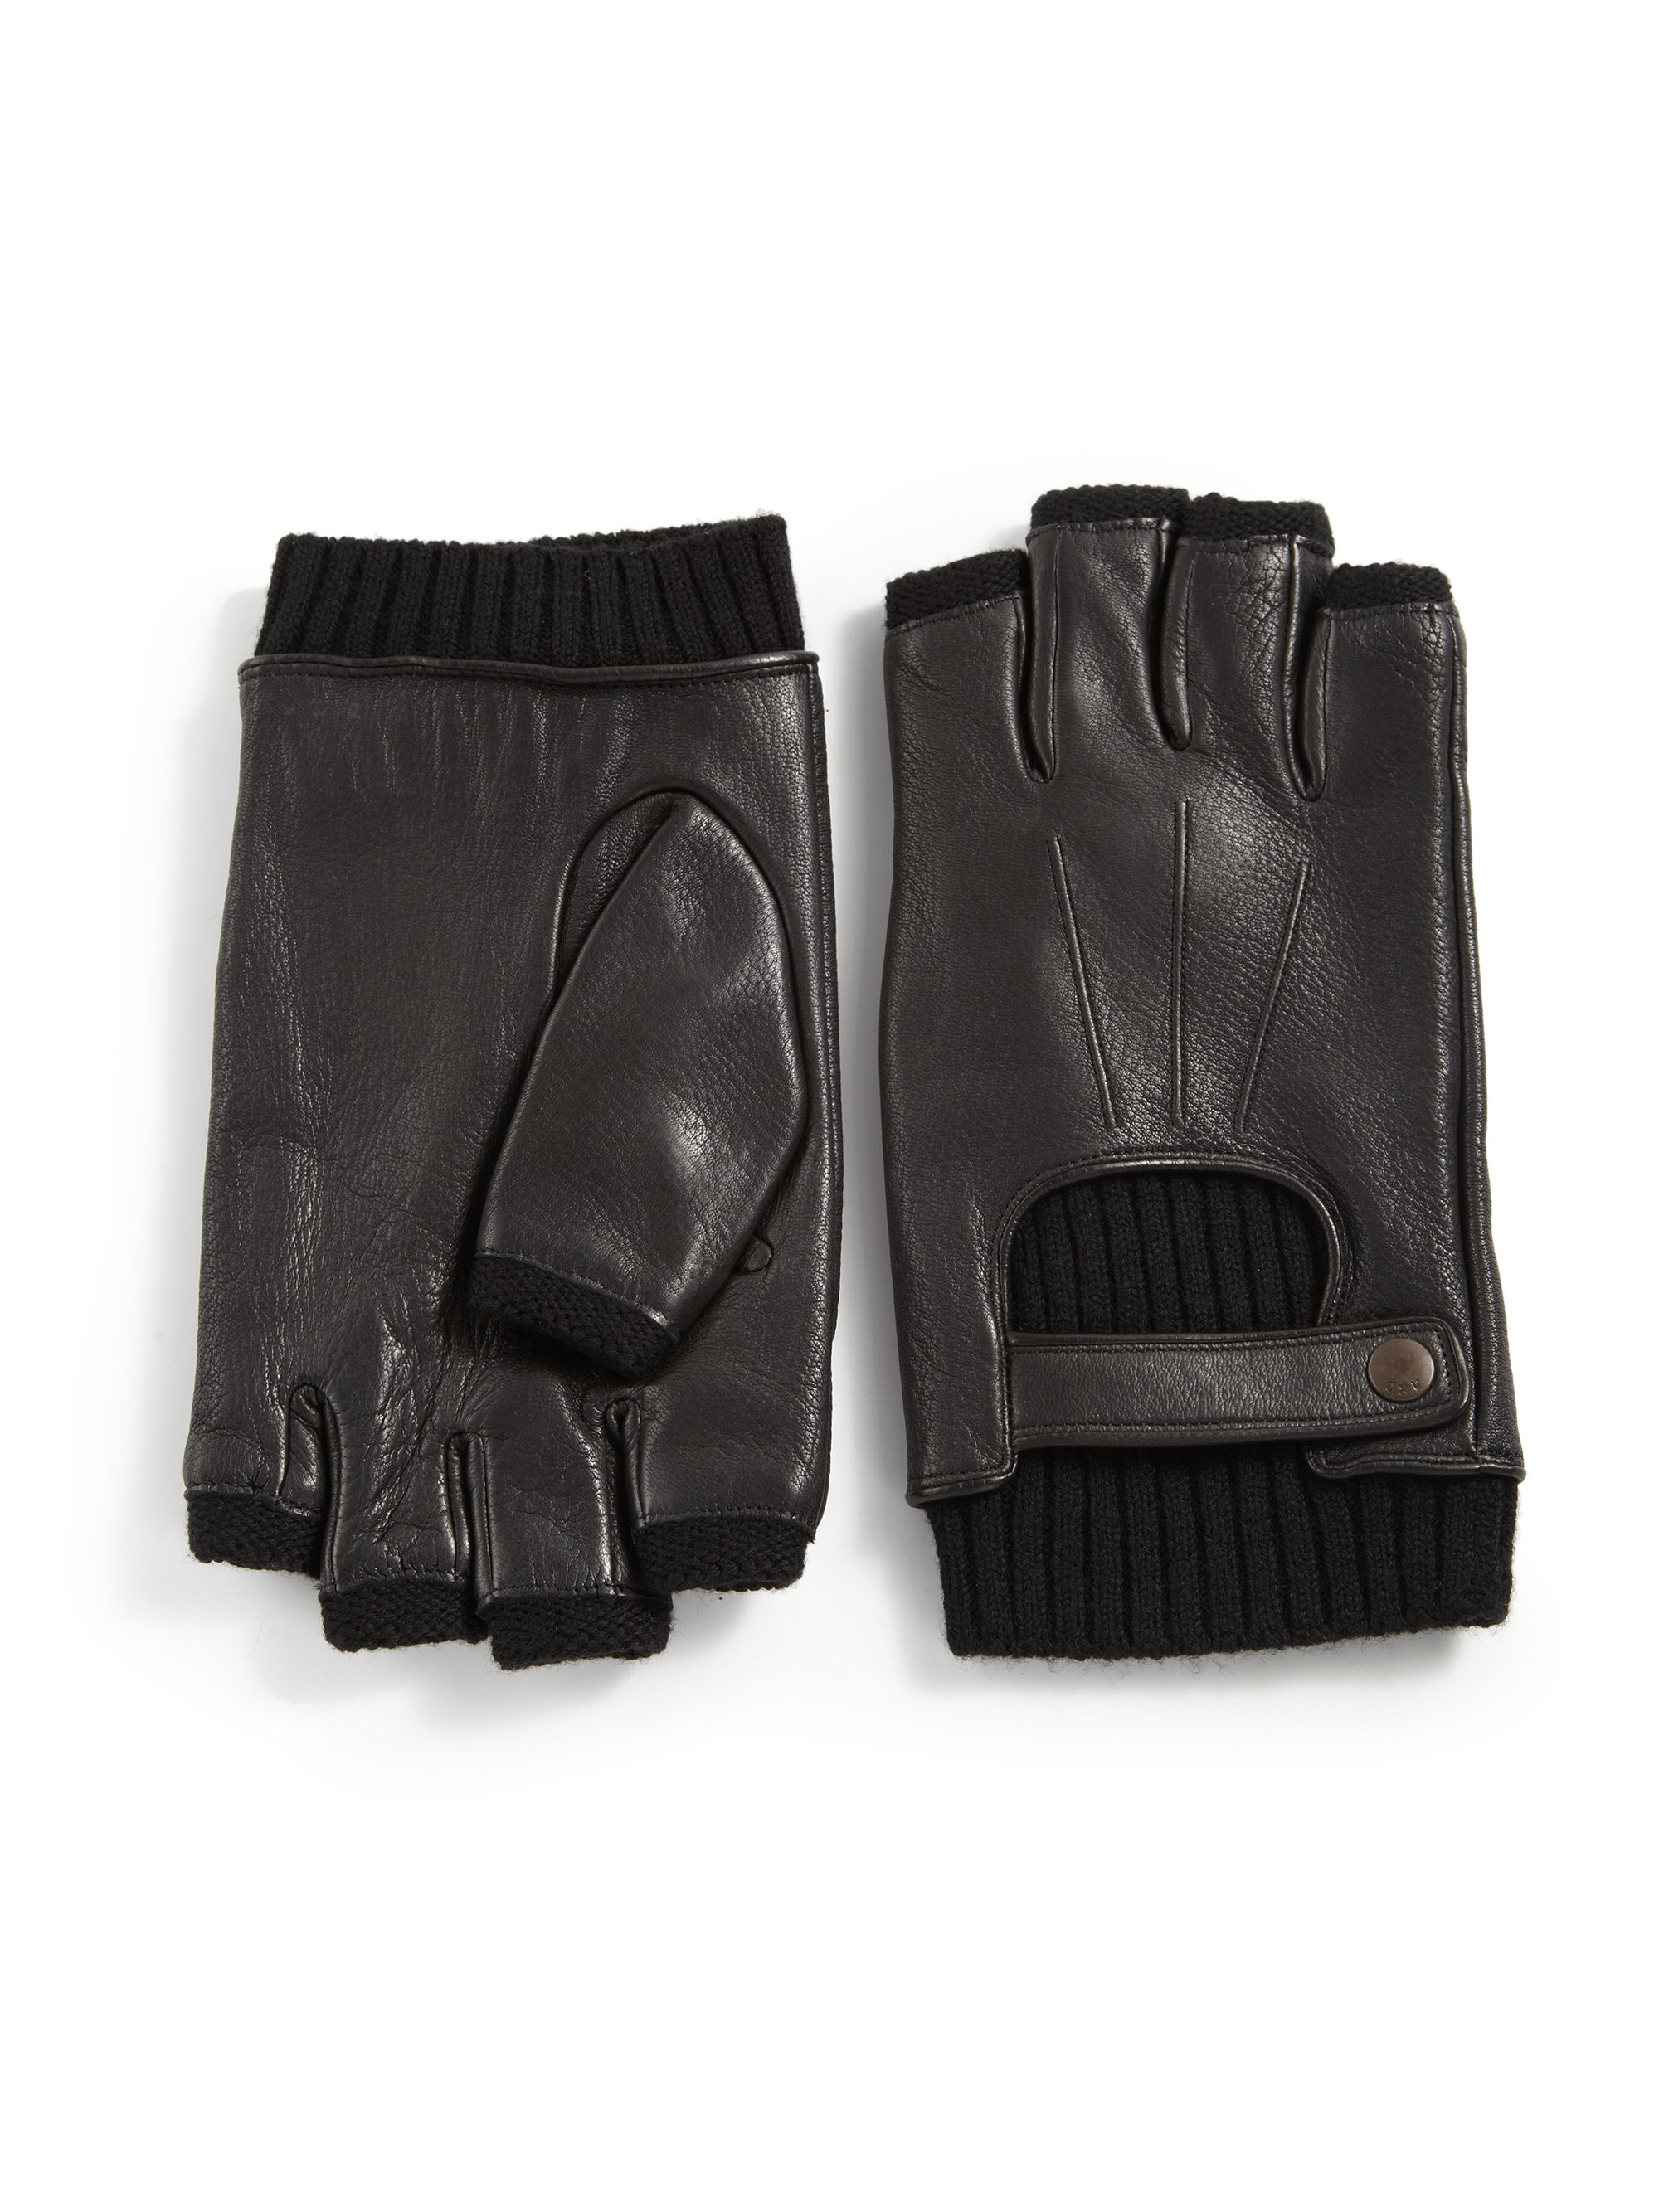 John varvatos leather driving gloves - John Varvatos Accessories Varvato Usa Fingerless Driving Gloves